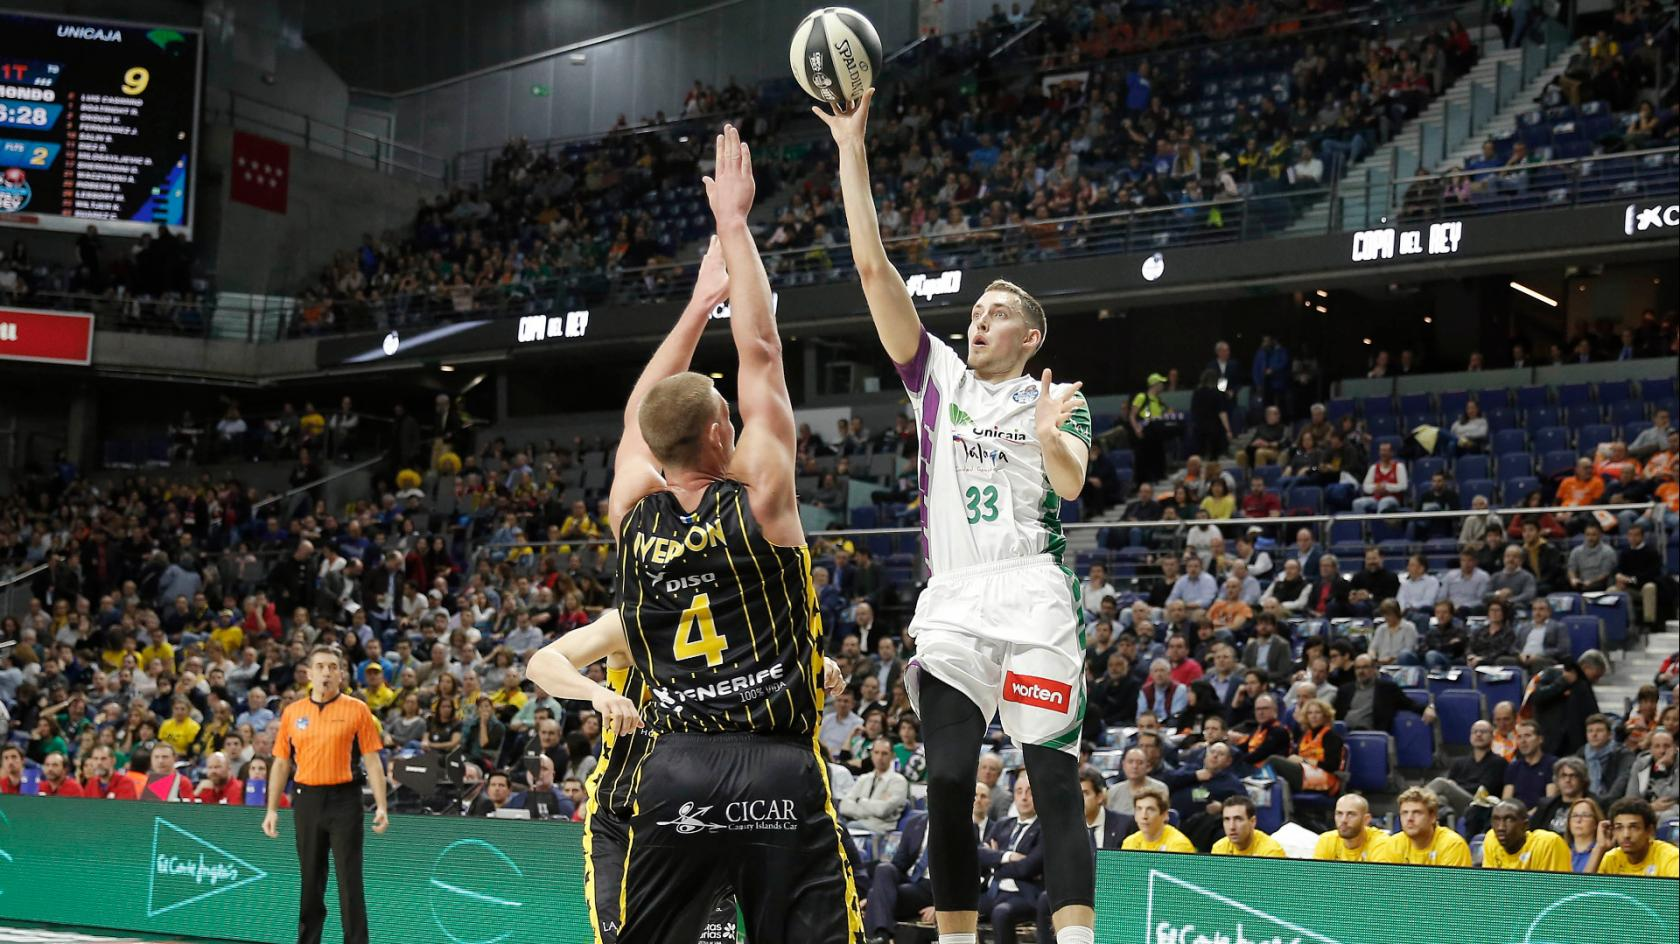 Unicaja was defeated by Iberostar Tenerife at the Copa del Rey (88-78)